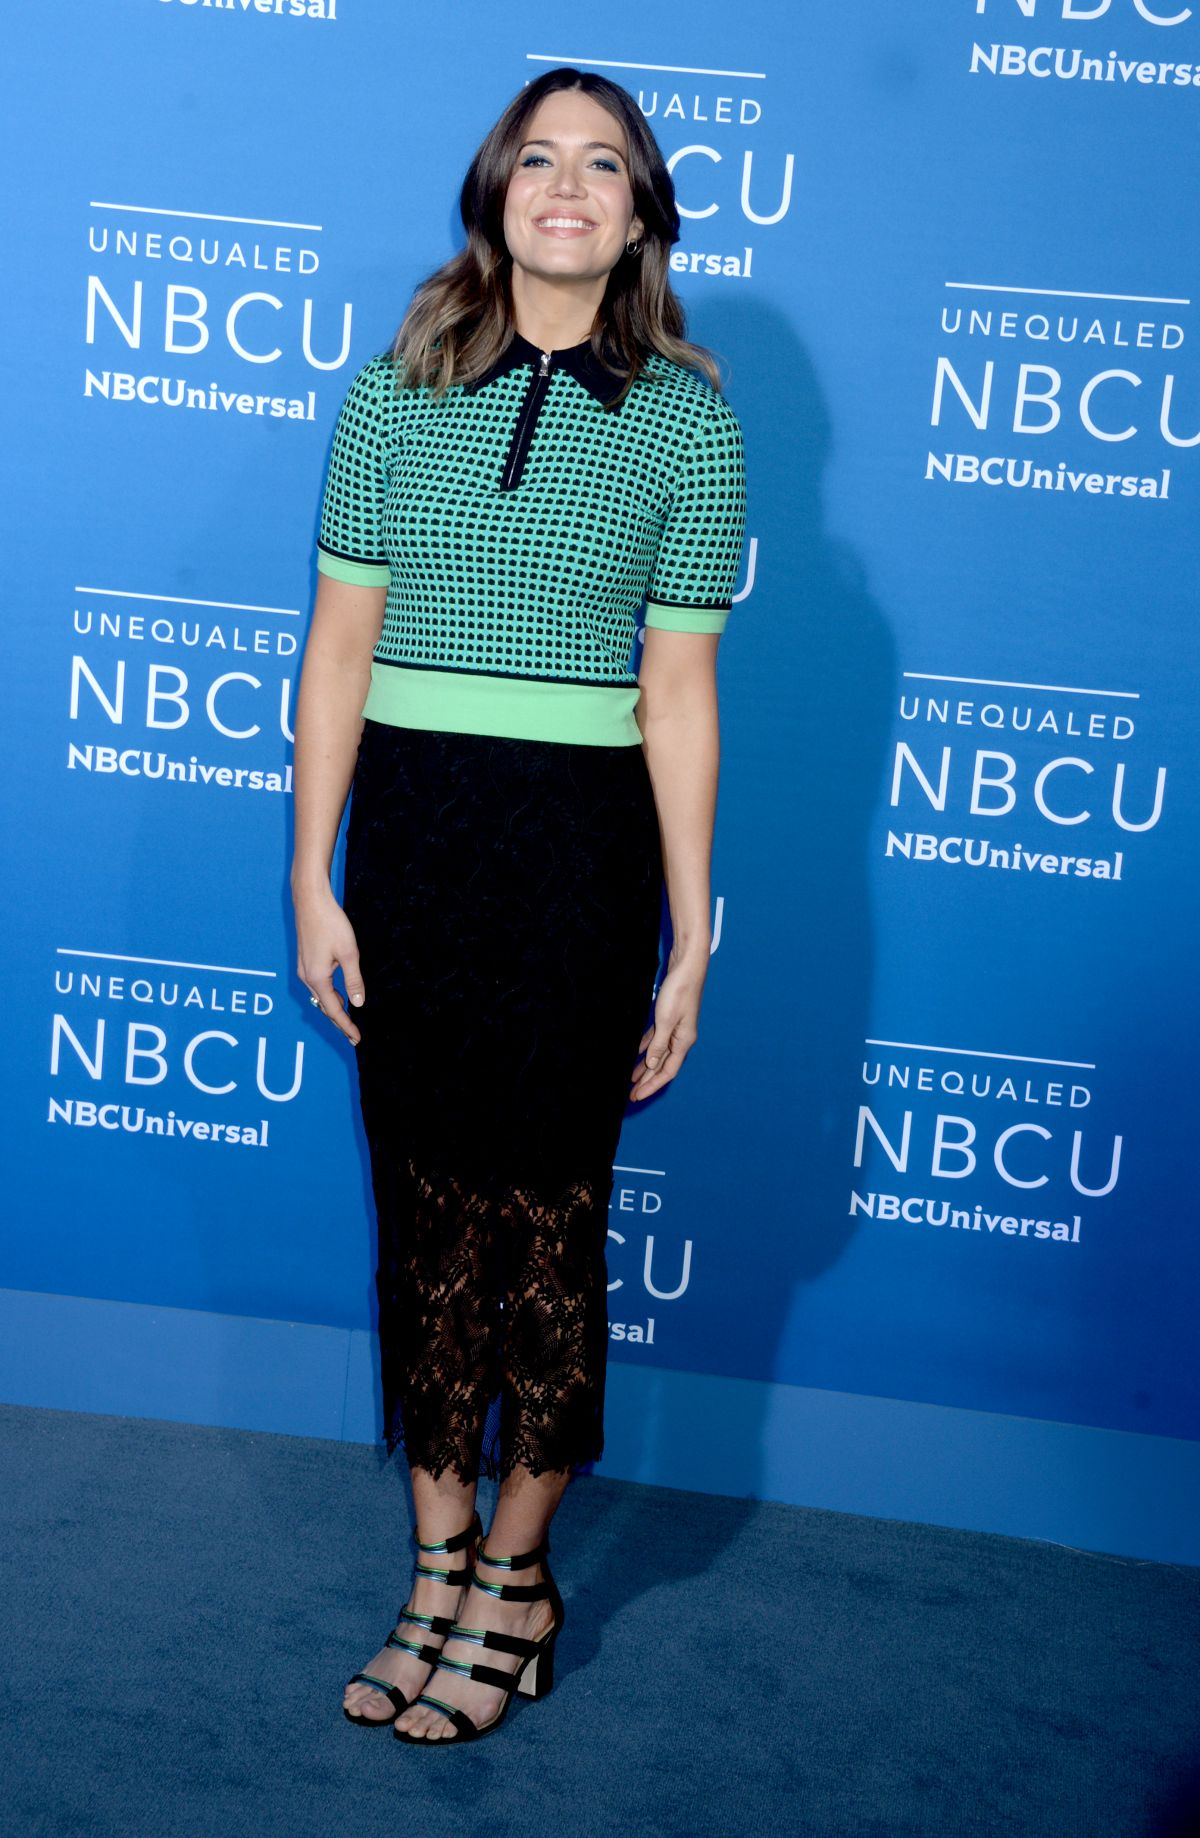 Mandy Moore At NBCUniversal Upfront in New York City   mandy-moore-at-nbcuniversal-upfront-in-new-york-city_10